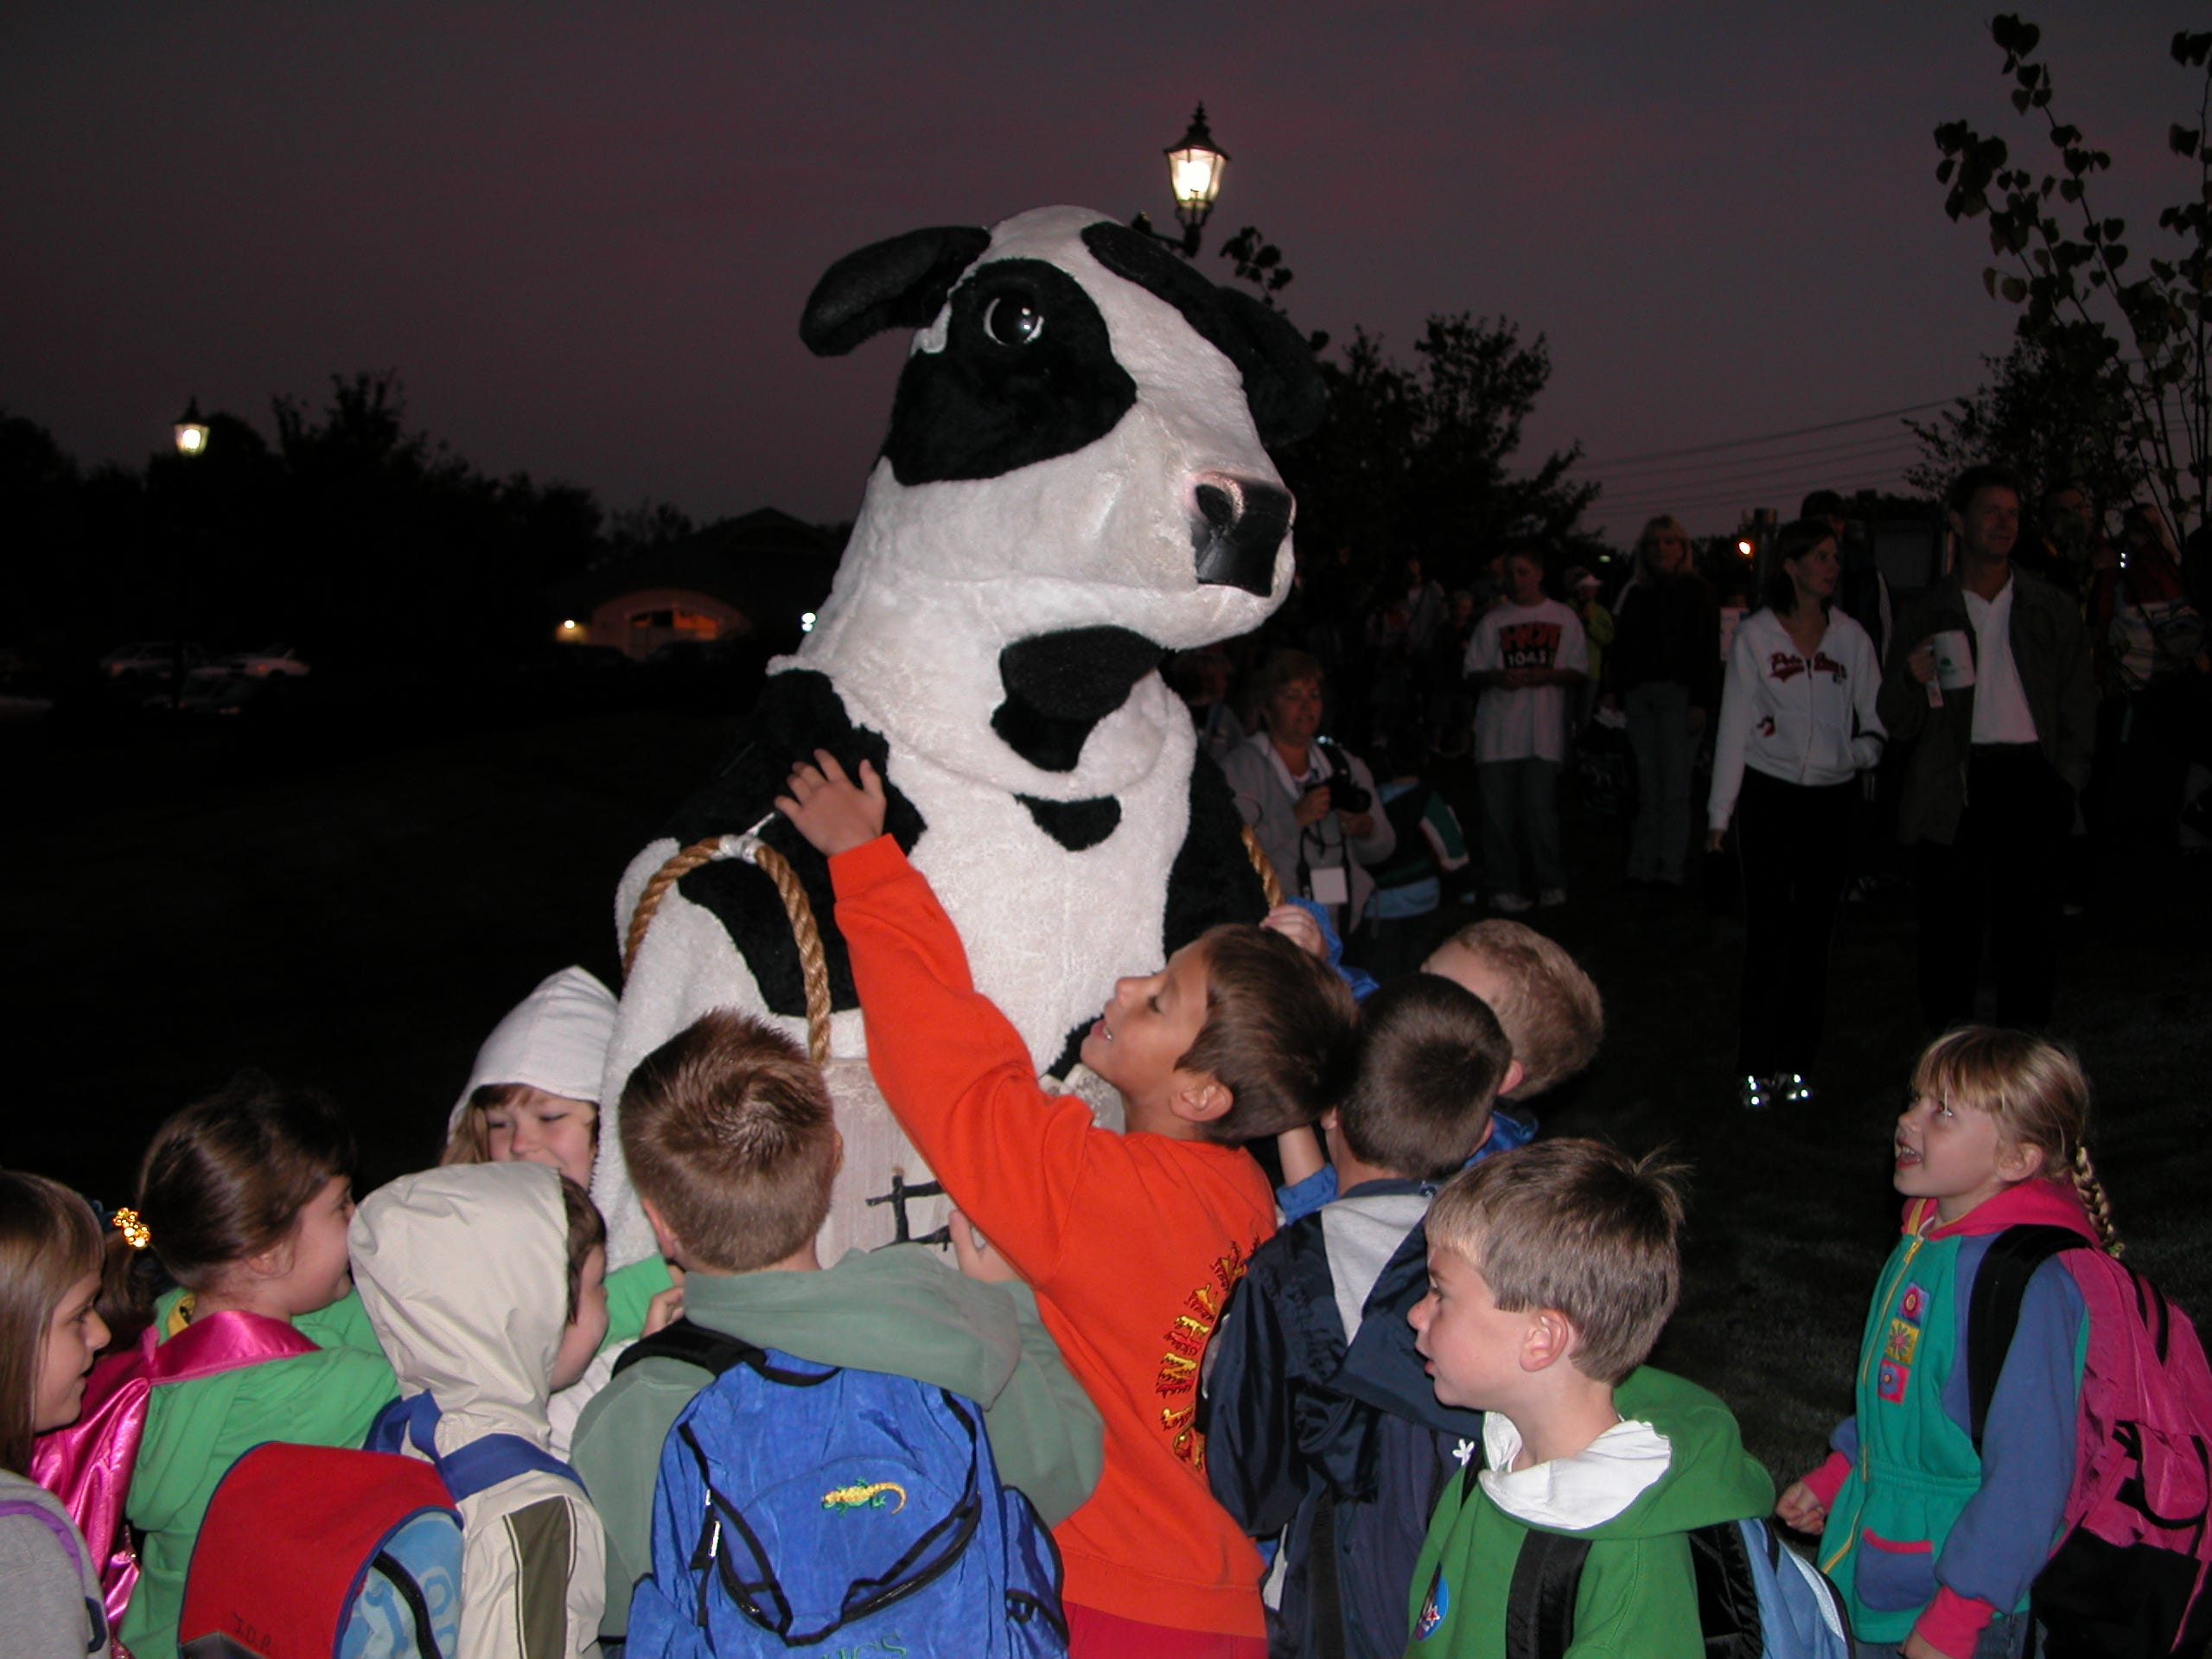 Farragut Primary students swarm around the Chick-Fil-A cow after stretching for the walk to school.